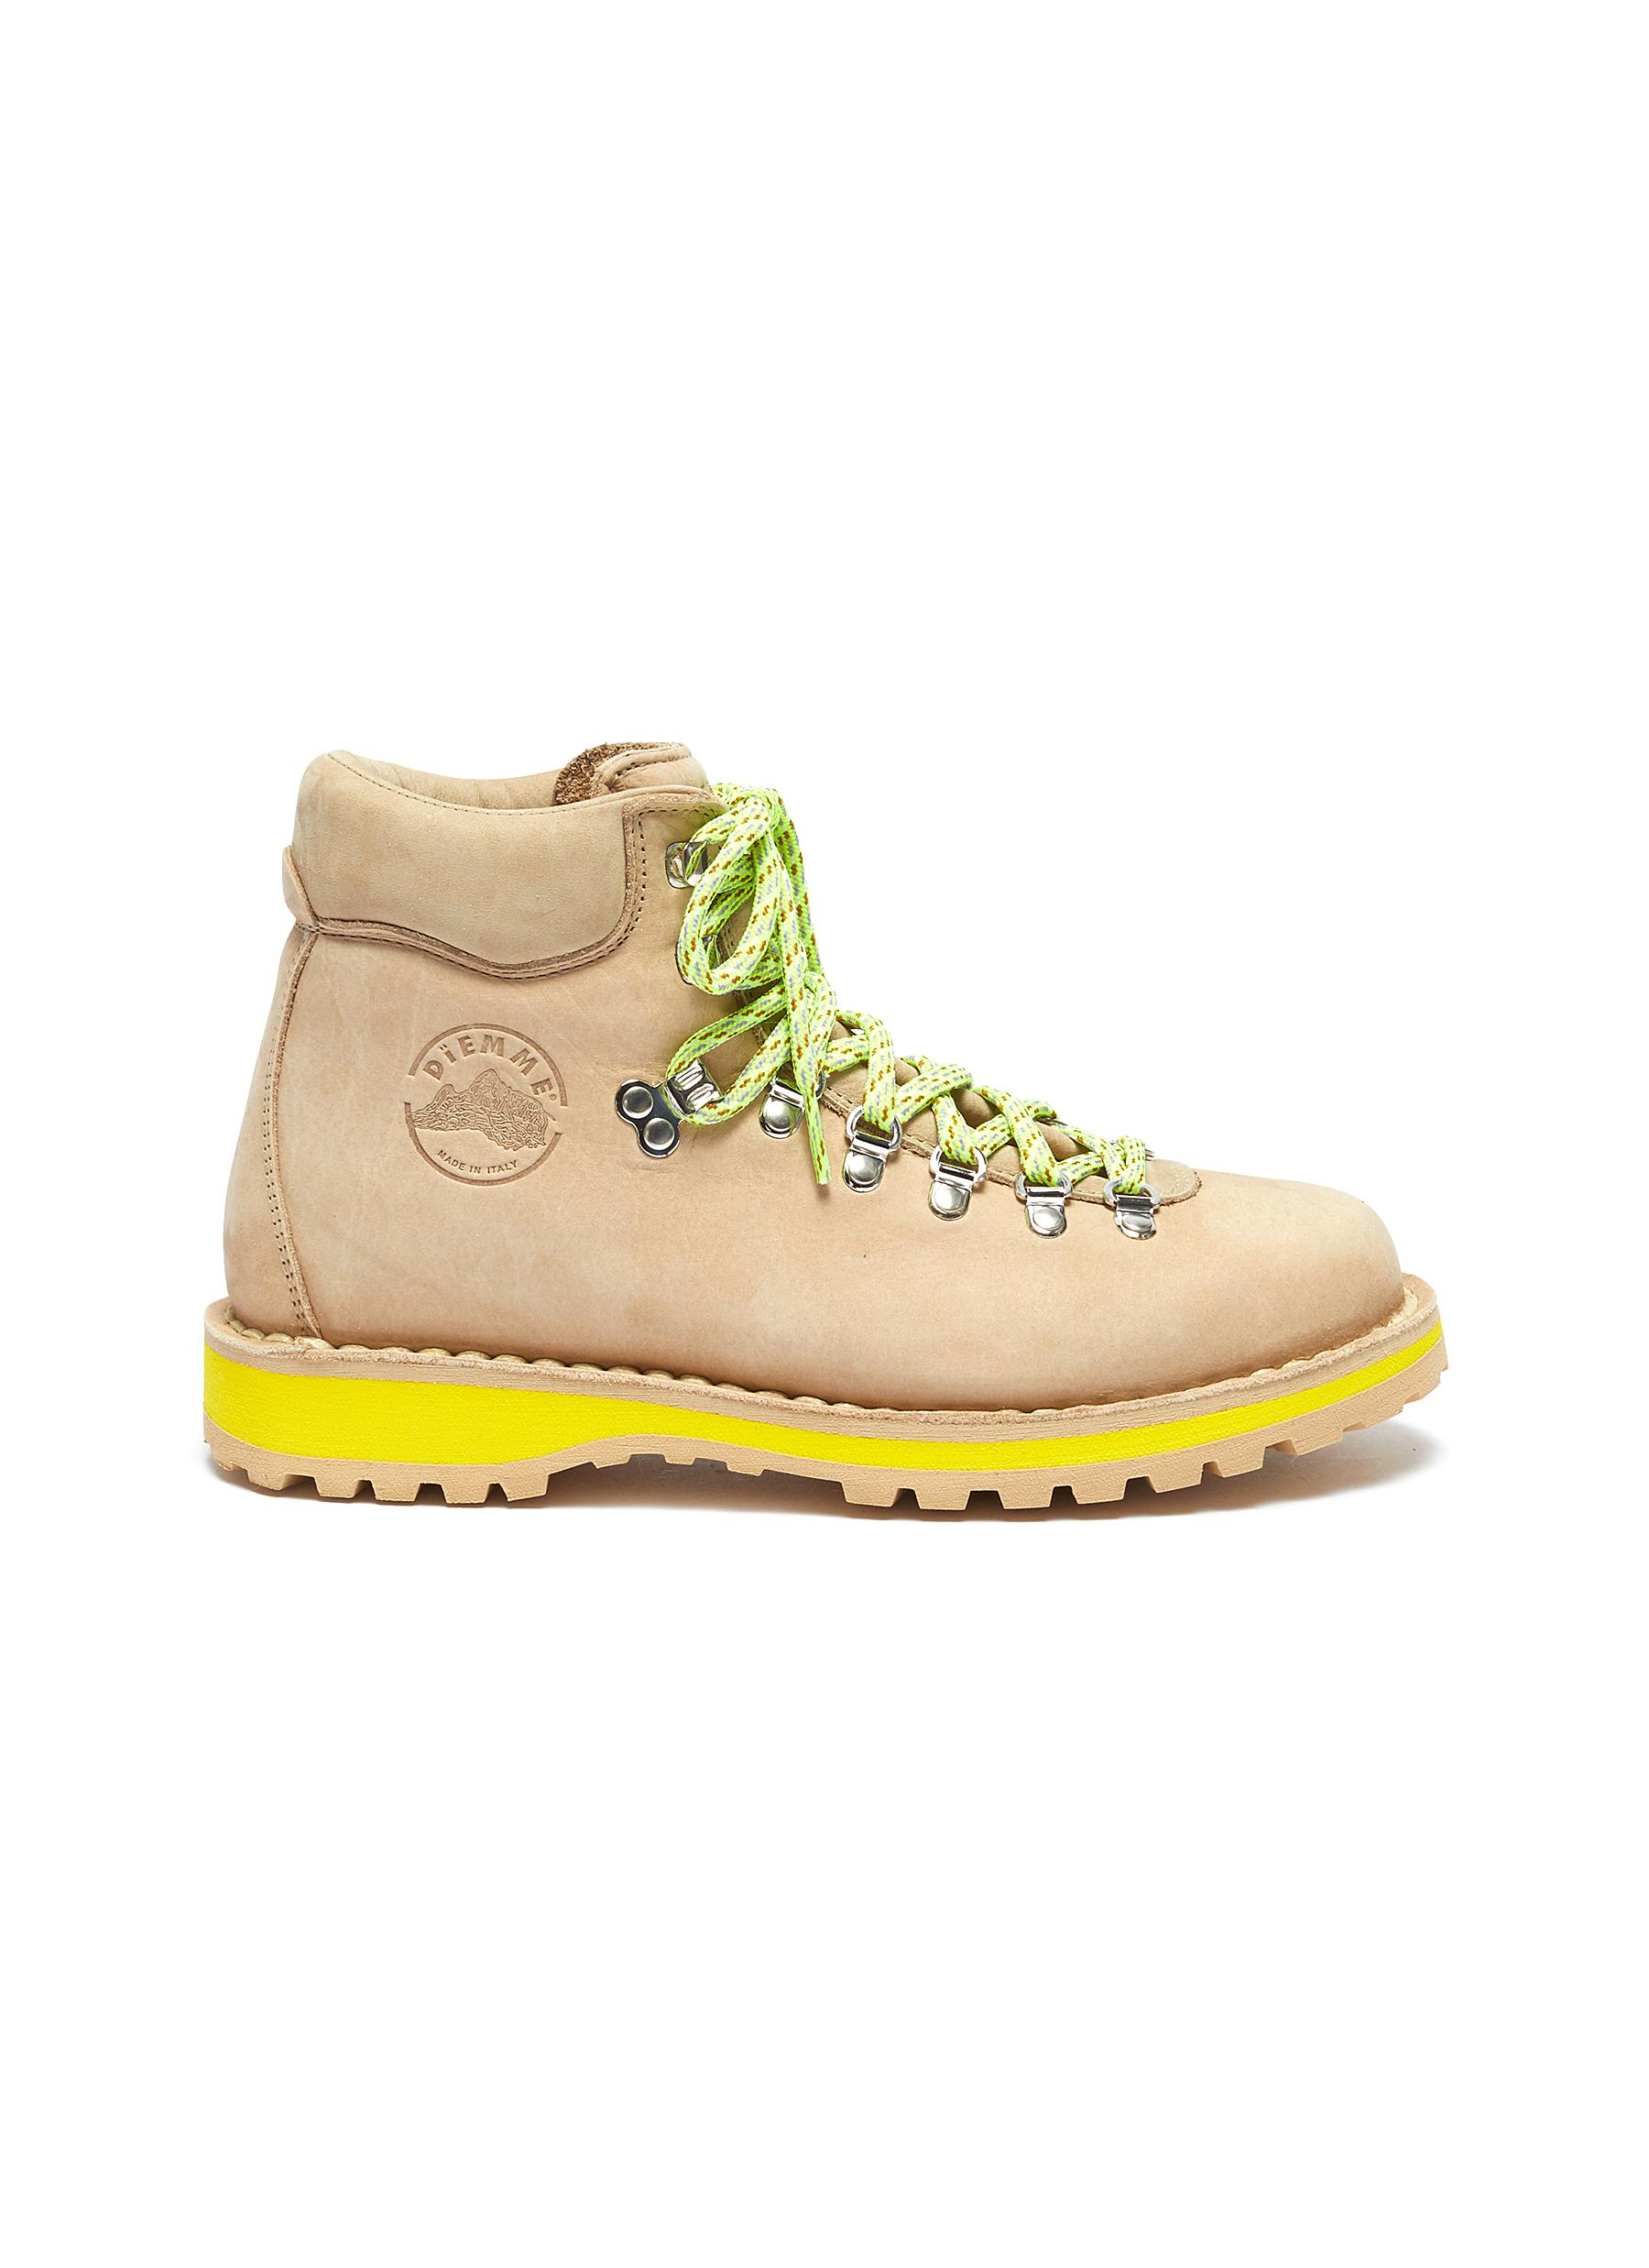 Roccia suede hiking boots by Diemme